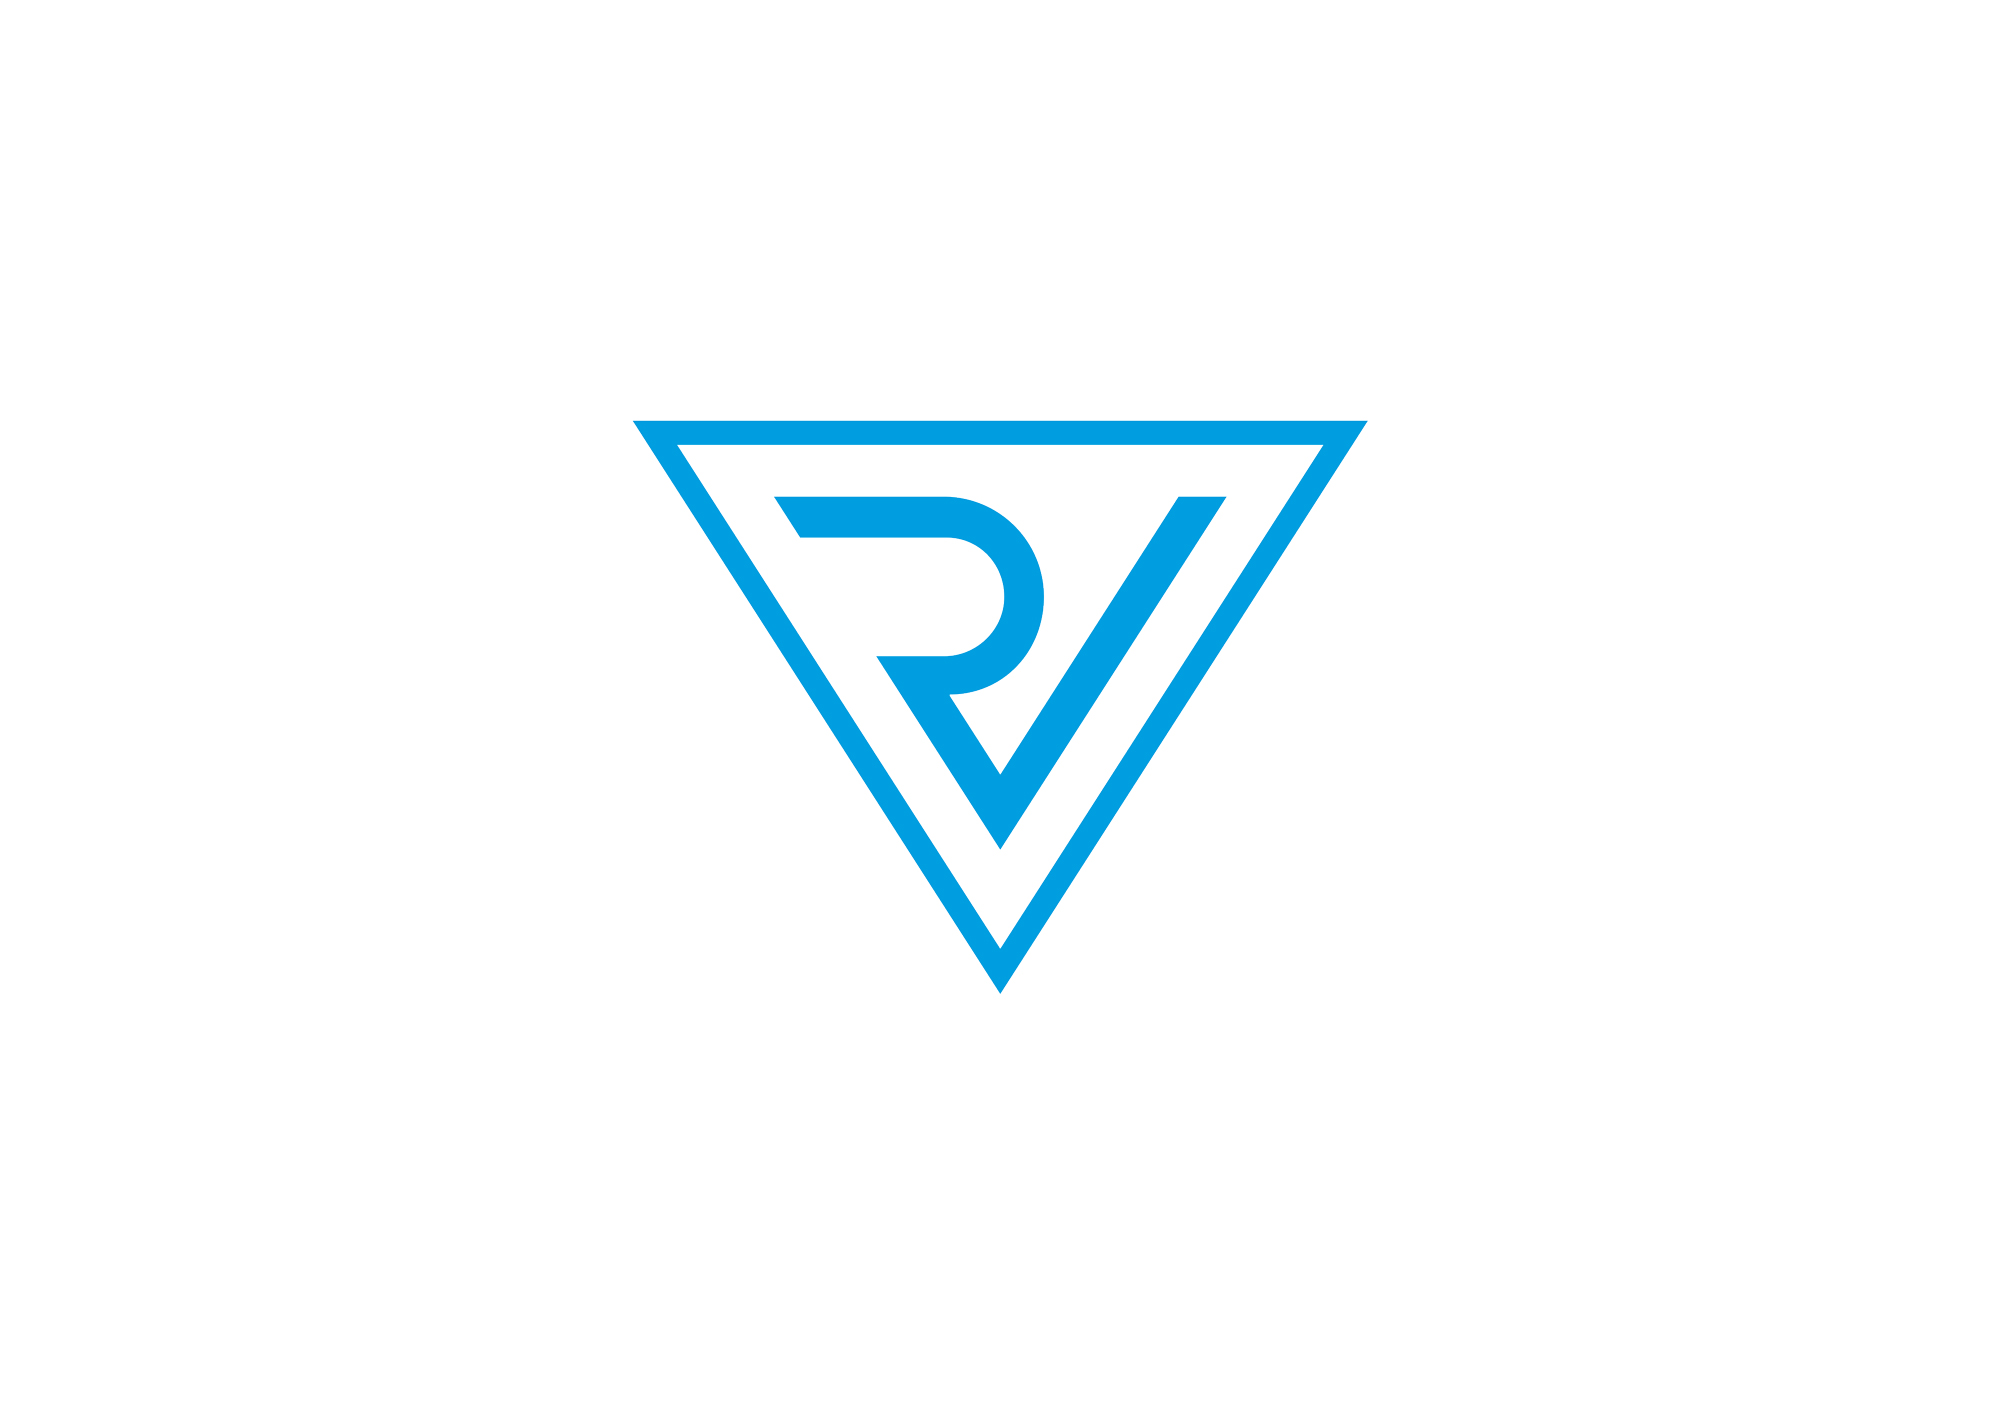 Pflaum-Verlag_Logo_Icon_Color.jpg?fit=2000%2C1414